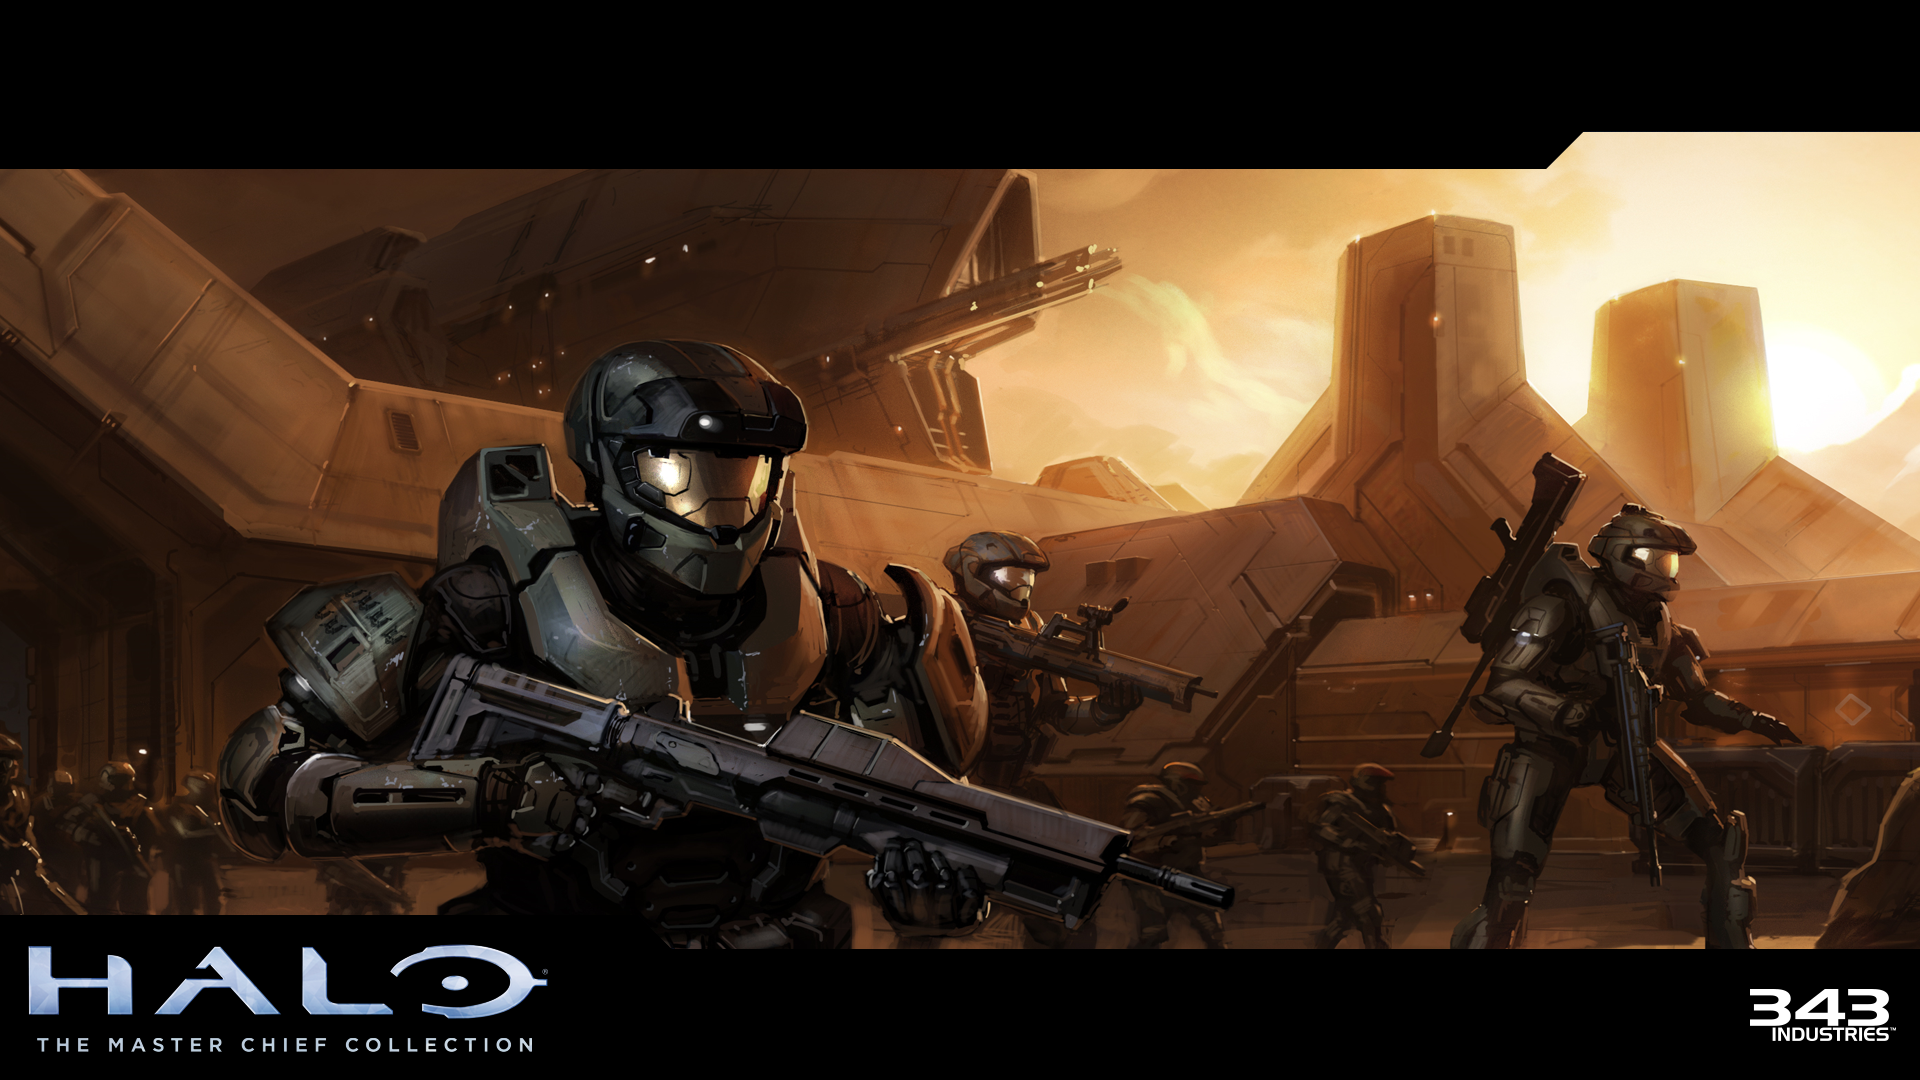 Xbox Halo The Master Chief Collection Achievements Find